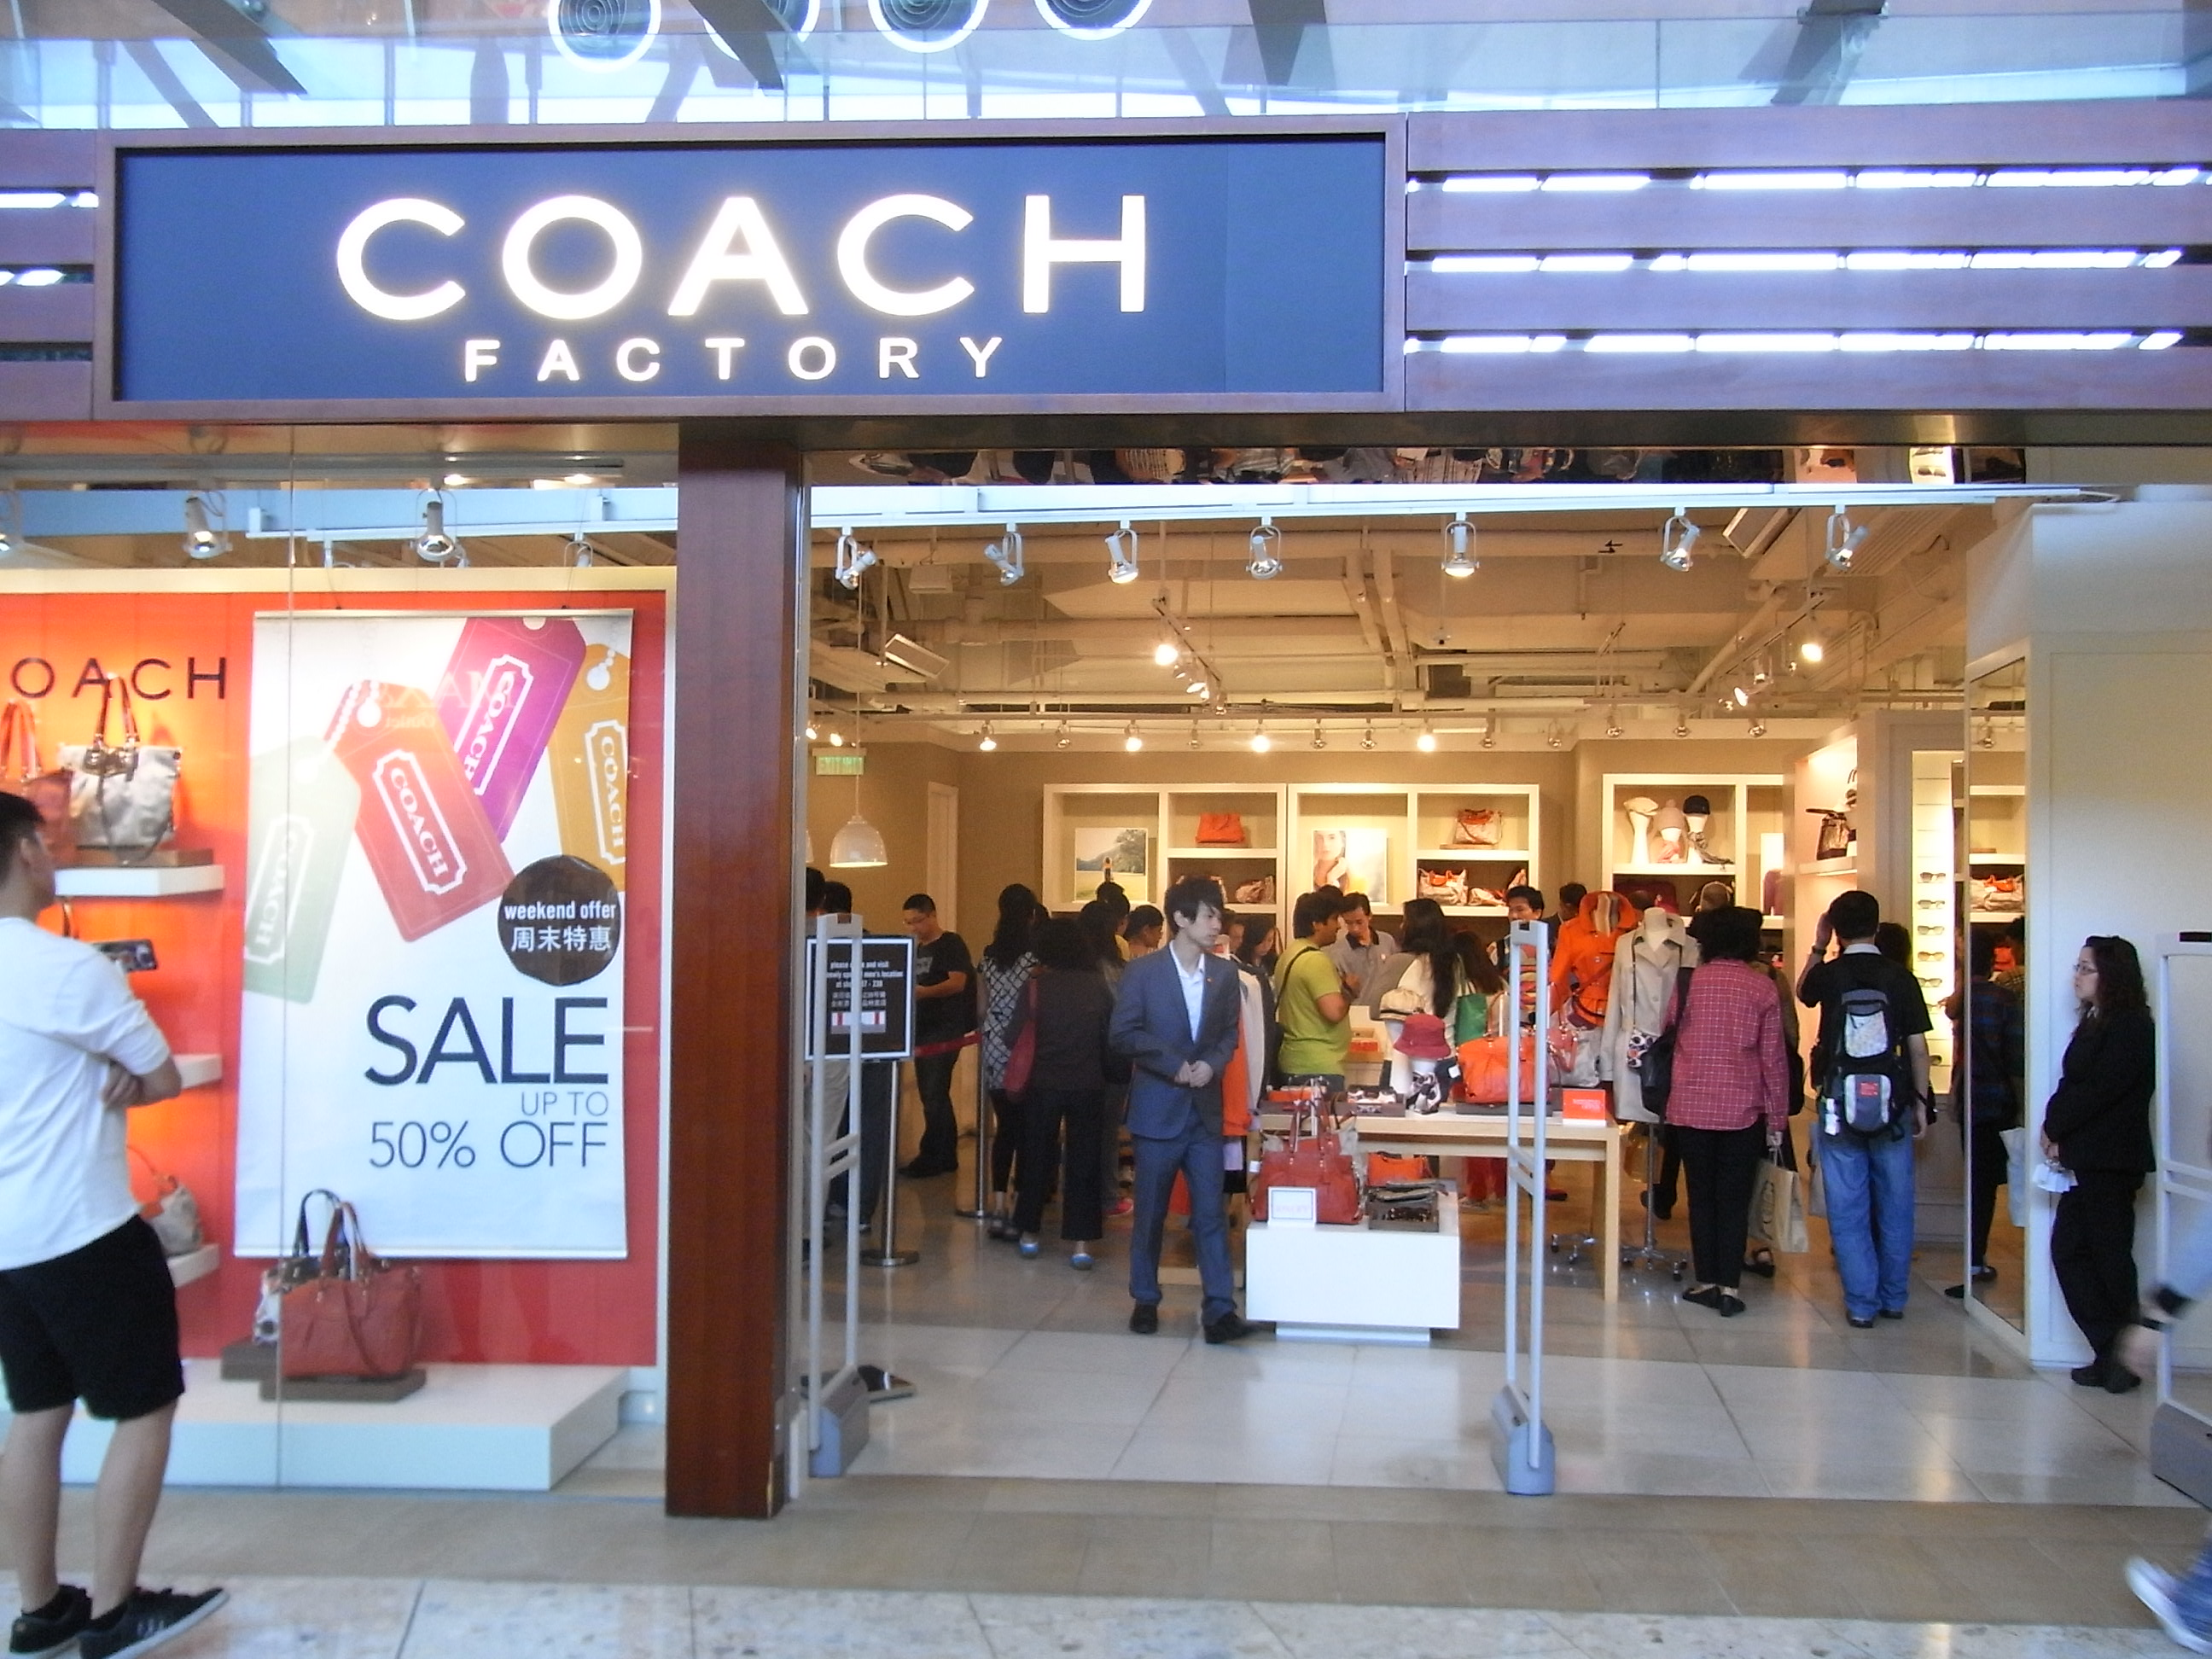 coachfactory outlet 8e40  File:HK Tung Chung CityGate Outlets shop COACH Factory Oct-2012JPG